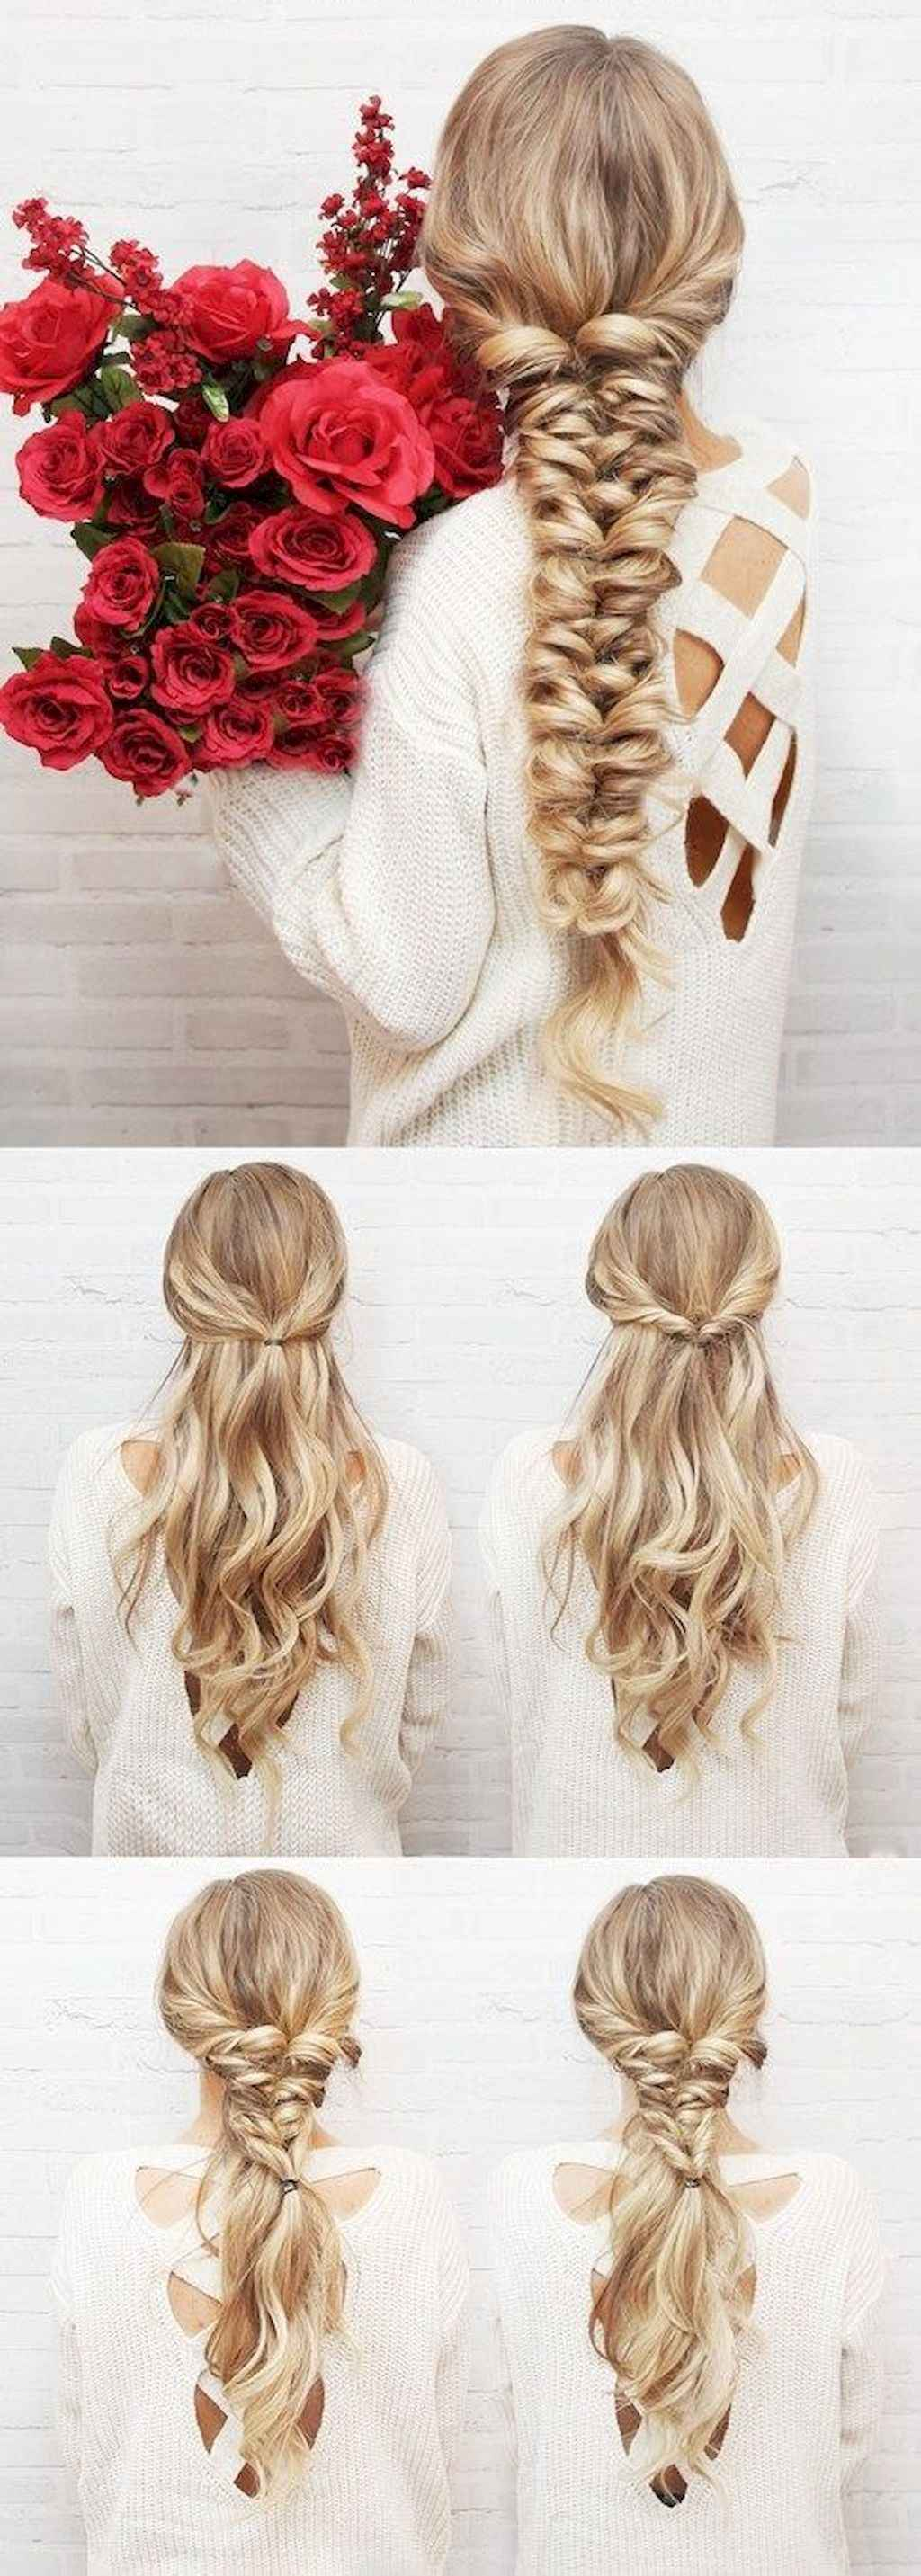 24 Easy Summer Hairstyle To Do Yourself